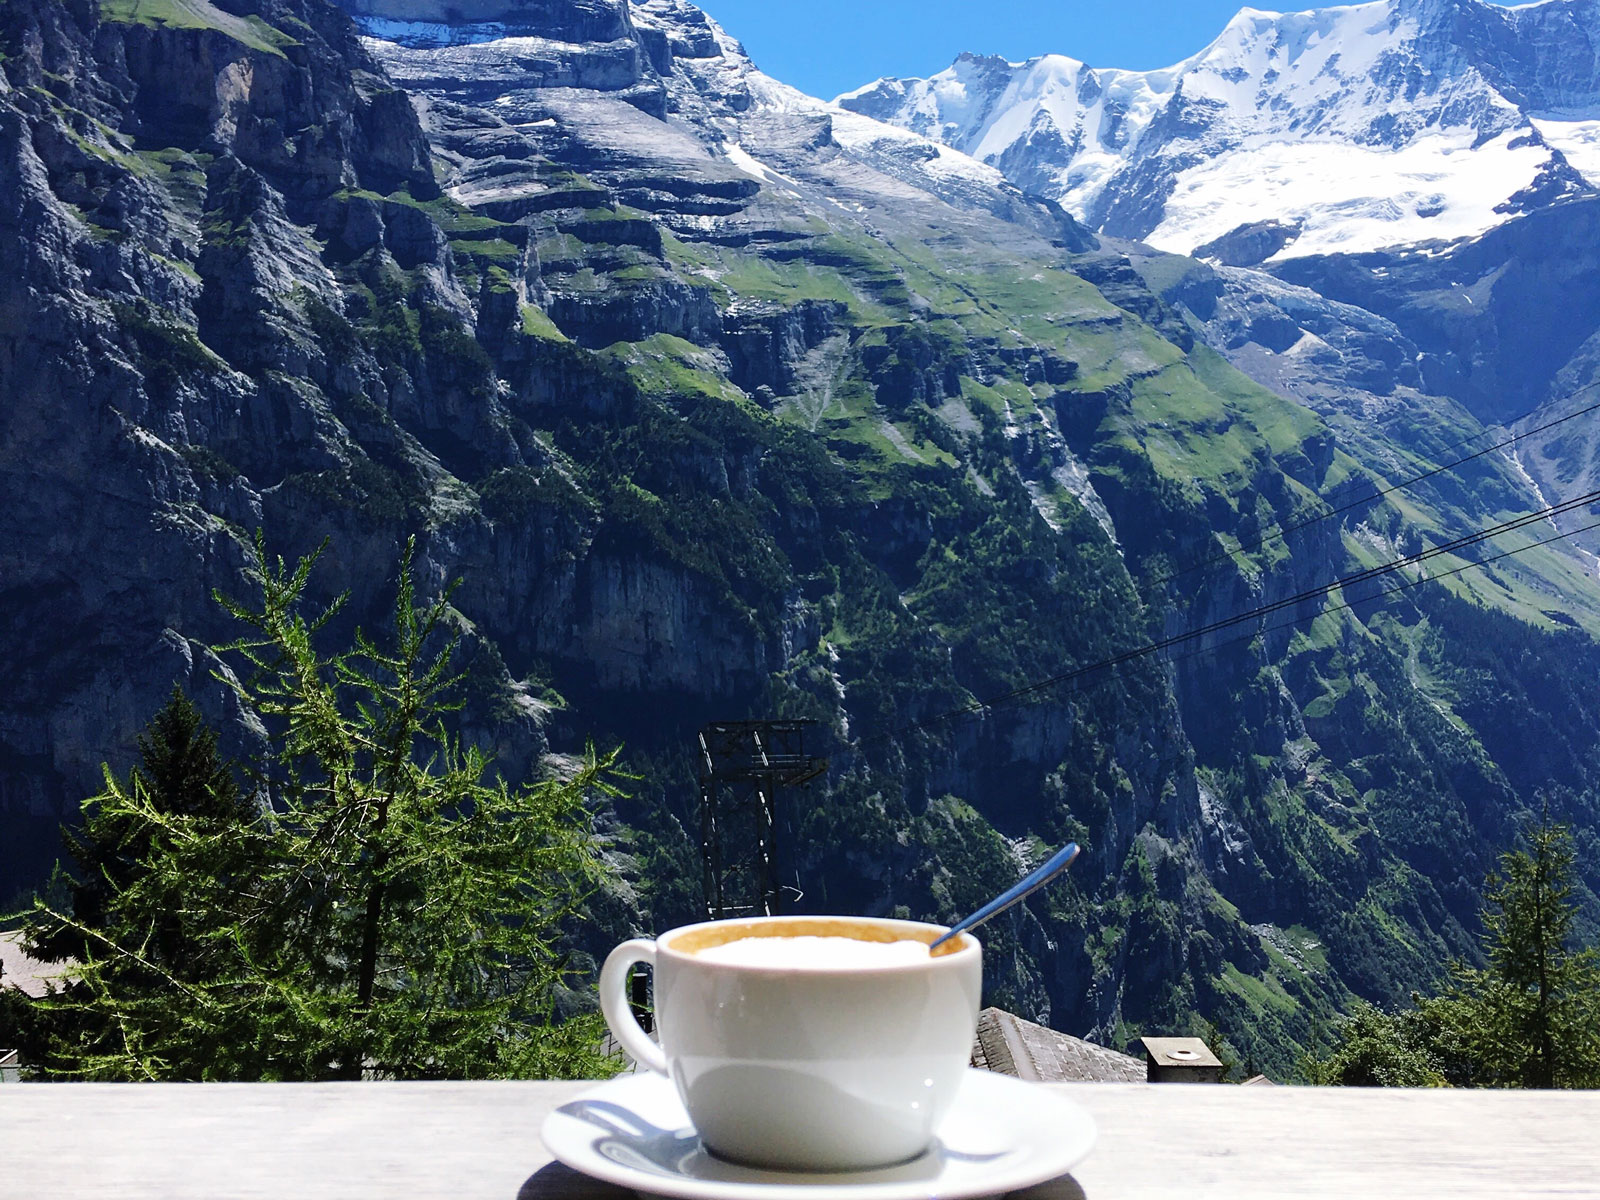 Switzerland Decides People Don't Need Coffee to Live, Misses the Point of Life